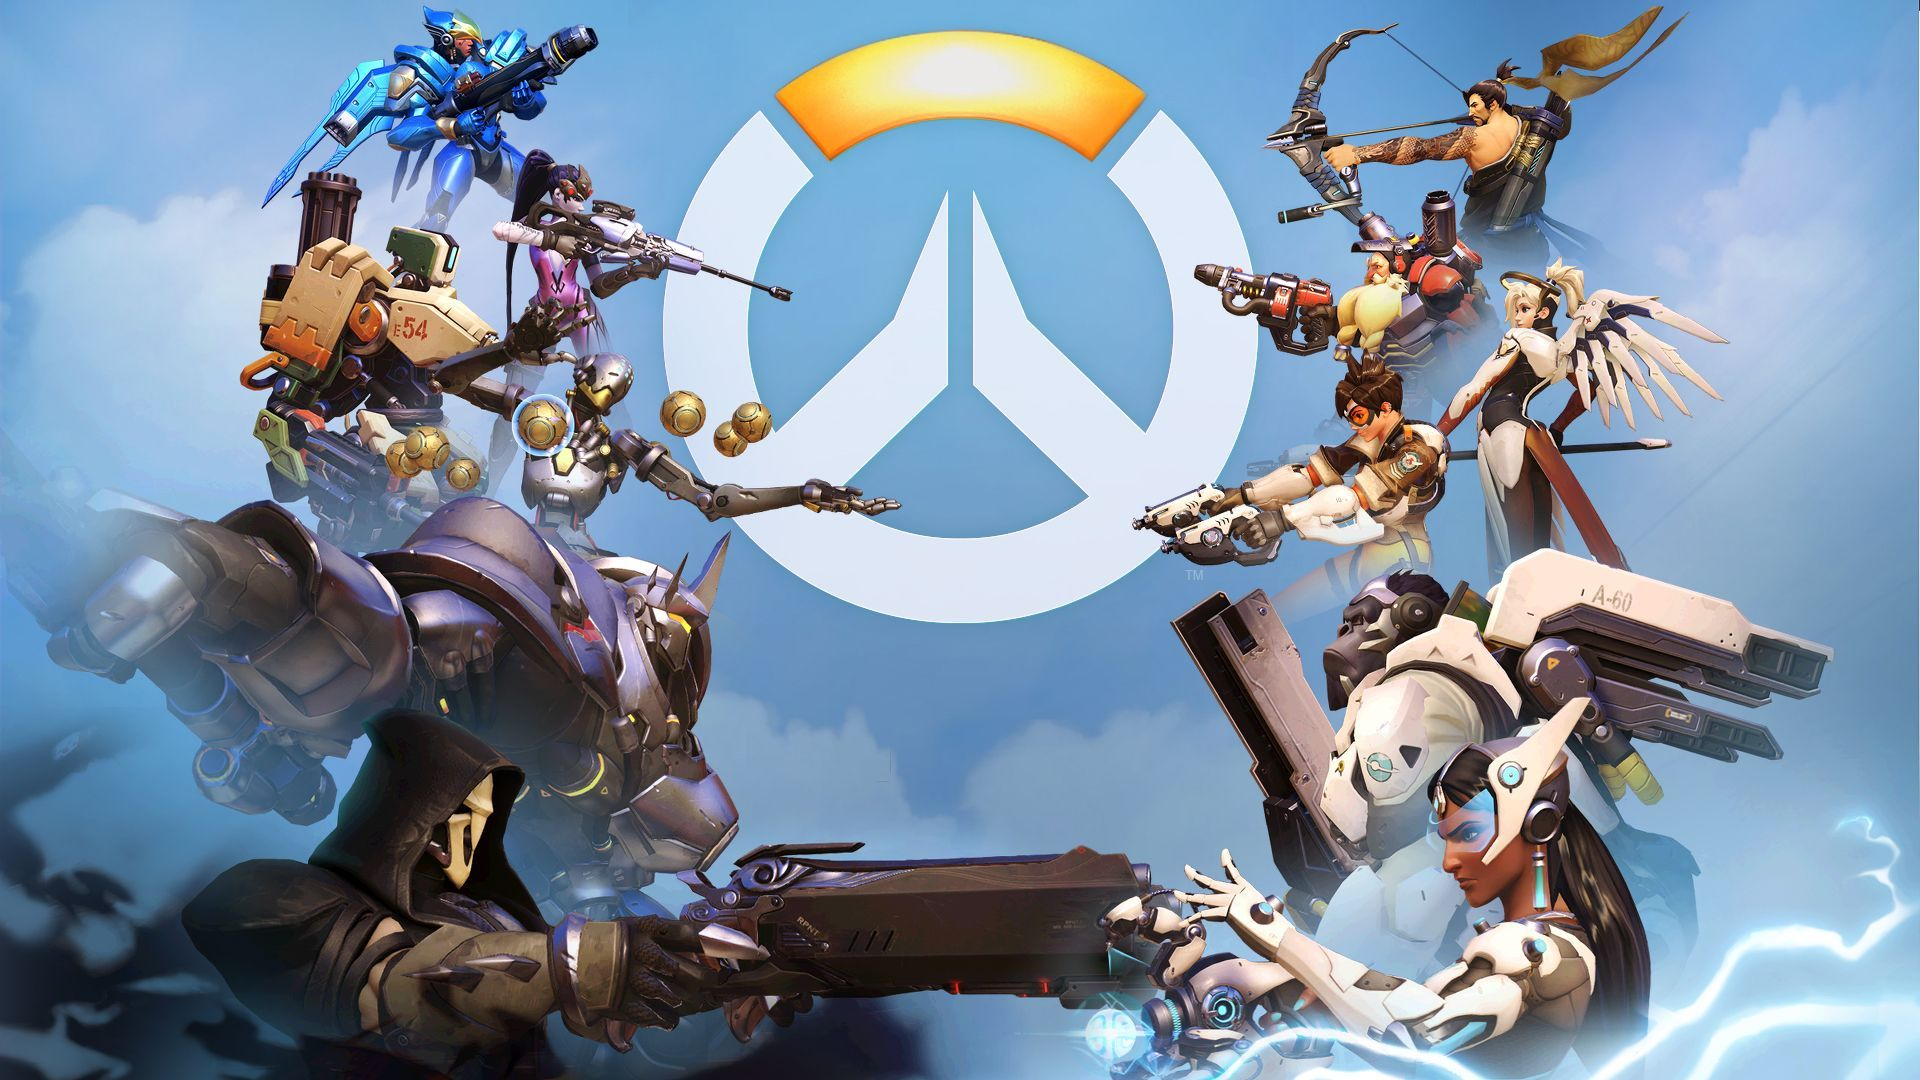 Overwatch Wallpaper Dual Monitor: 1080 X 1920 HD Backgrounds